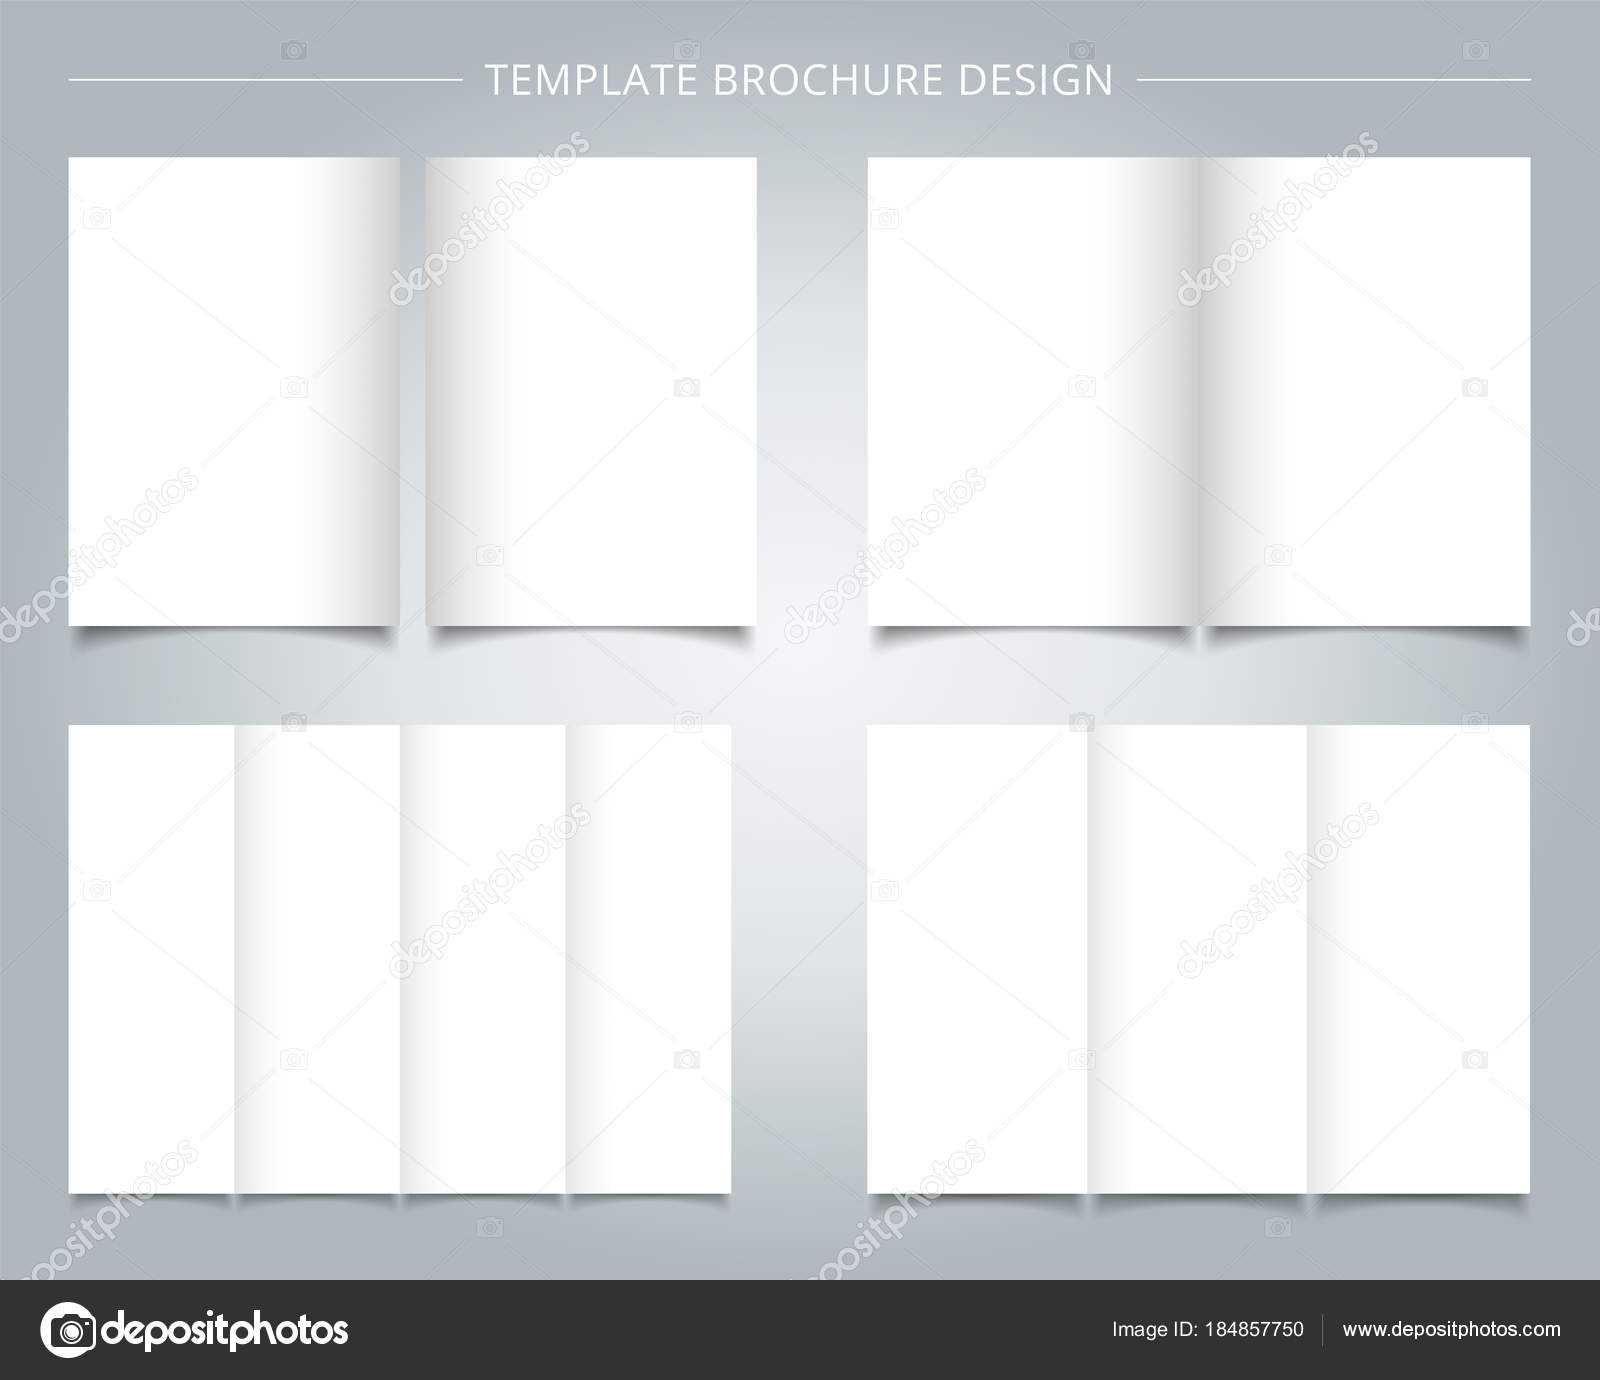 Blank Brochure Template - Zohre.horizonconsulting.co In Travel Brochure Template Ks2